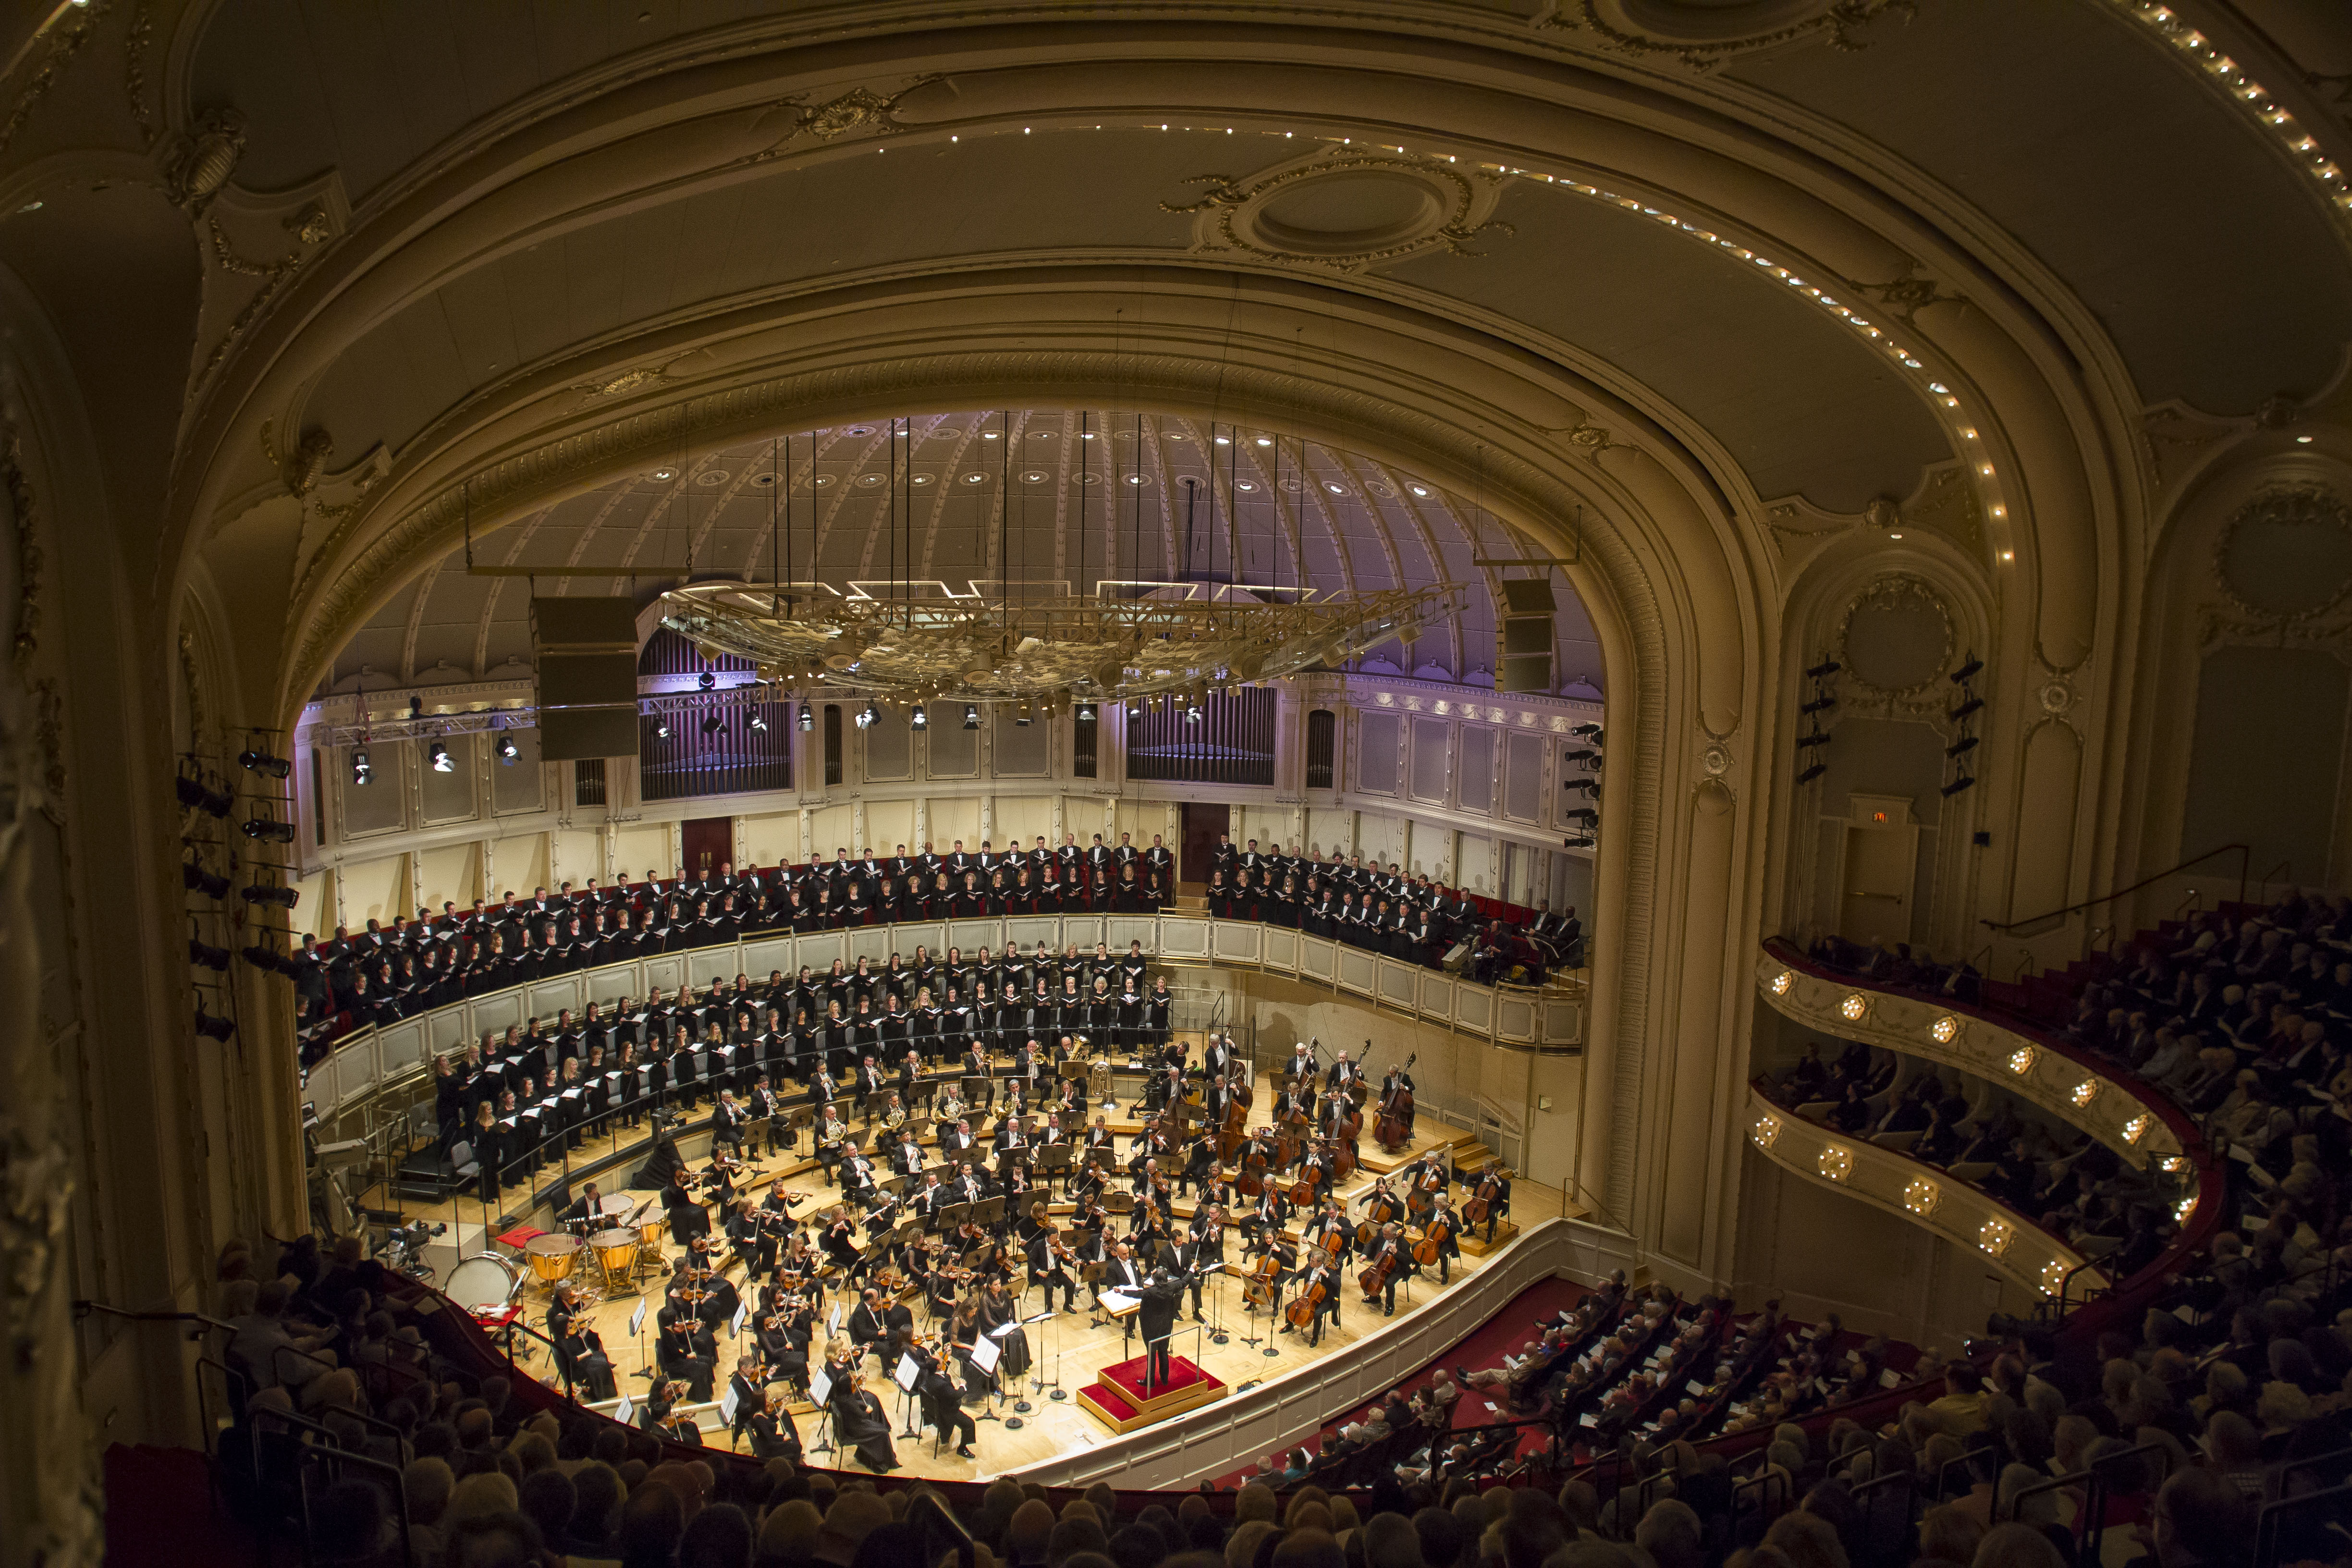 The Chicago Symphony Orchestra and audiences will be returning to Orchestra Hall later this month.